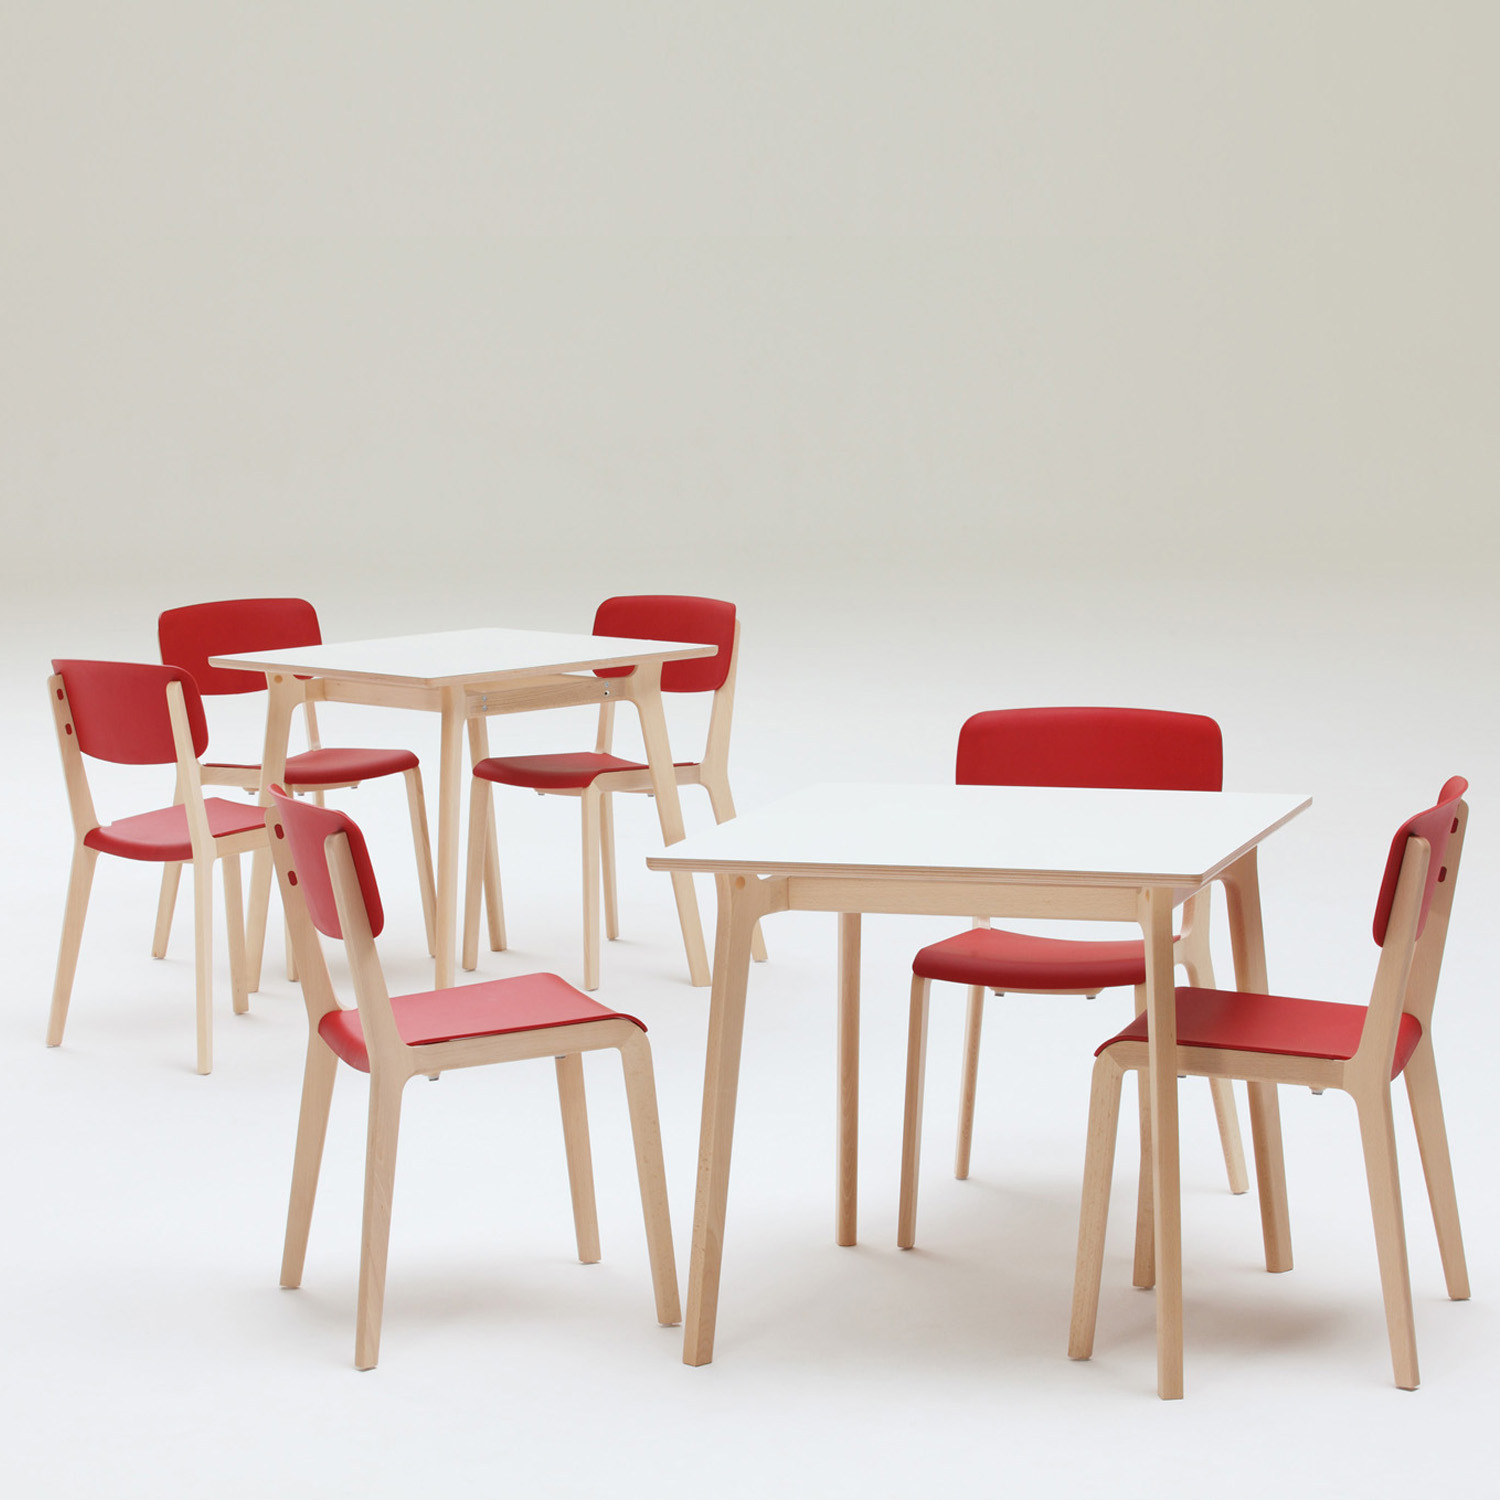 Jonty Cafe Chairs and Tables